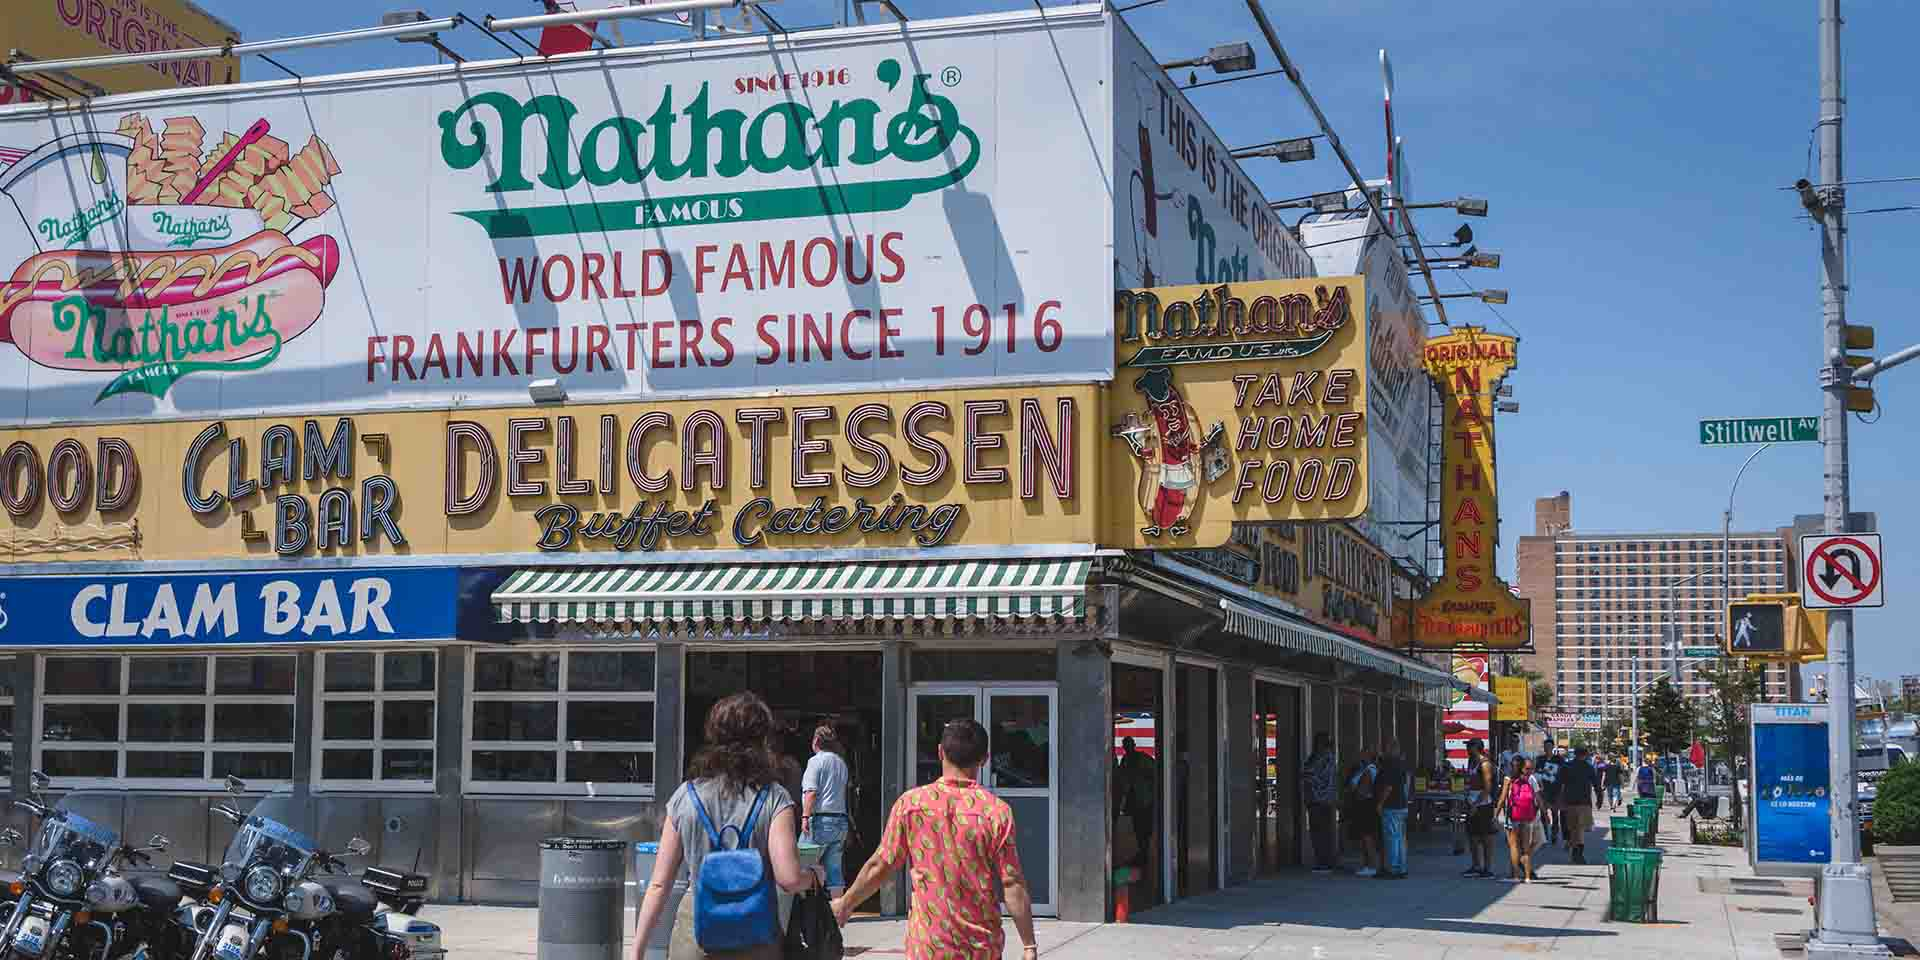 Nathan's Famous on Coney Island